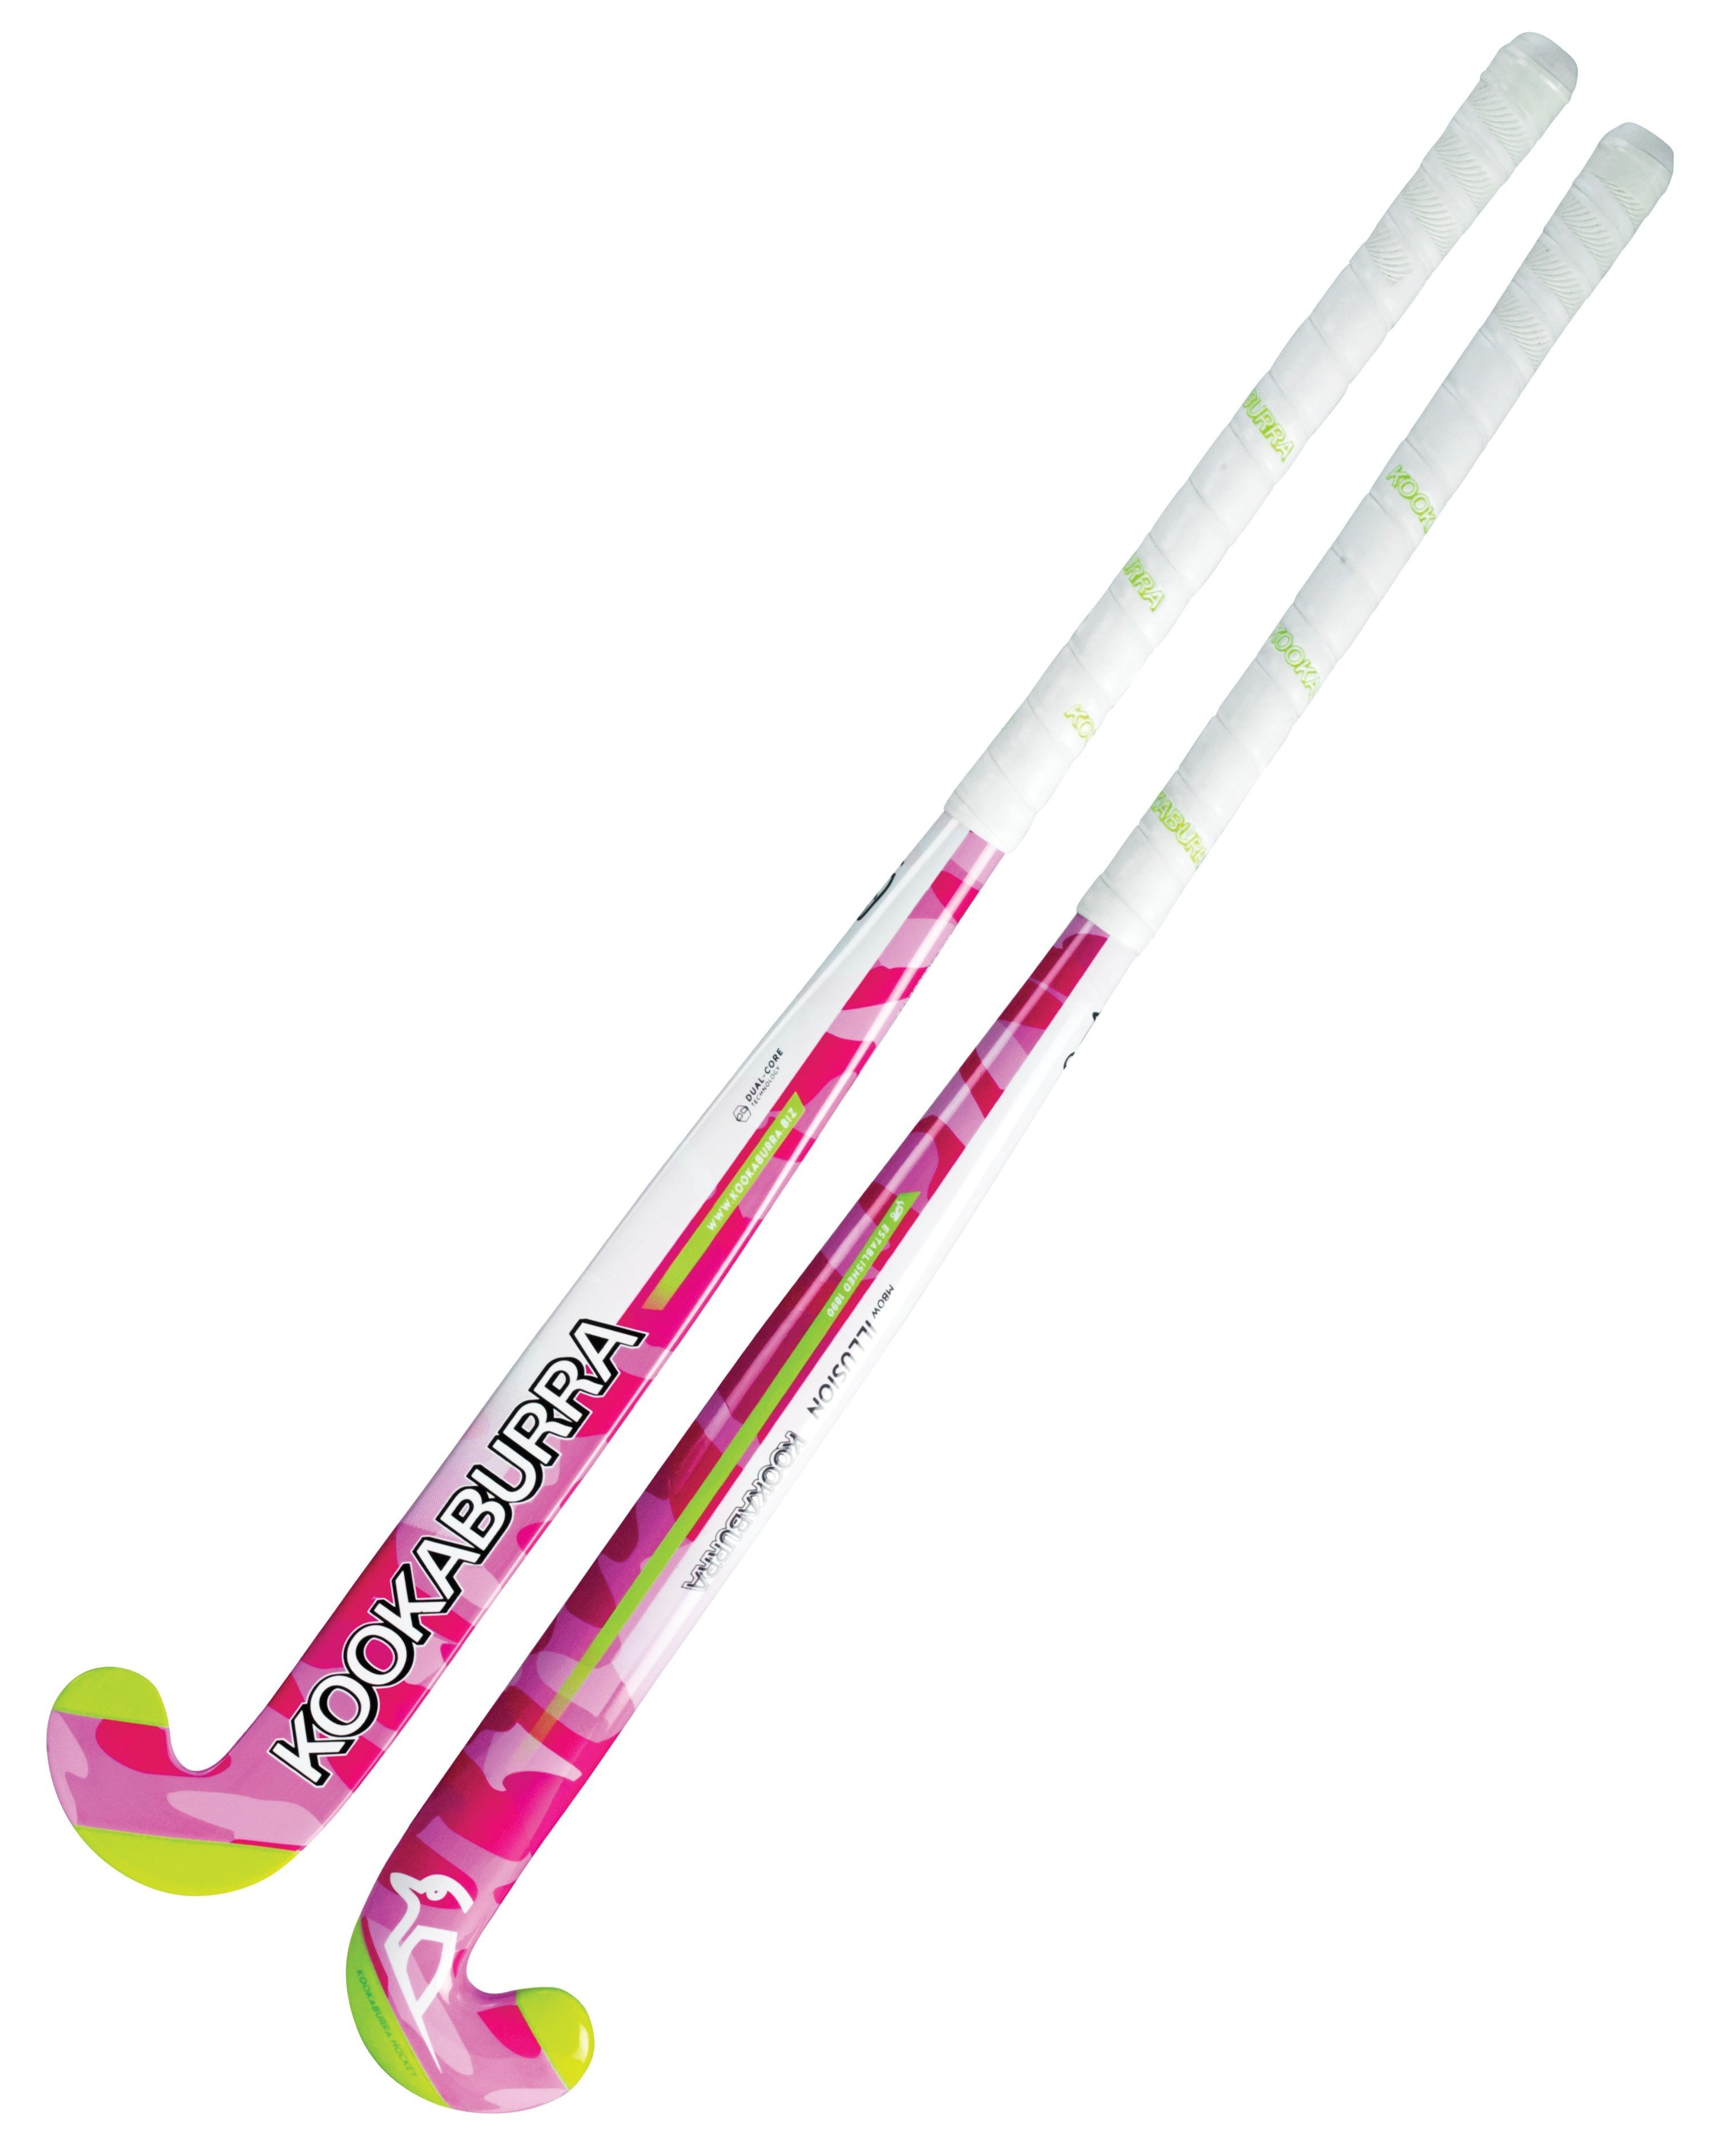 2016/17 Kookaburra Illusion Hockey Stick